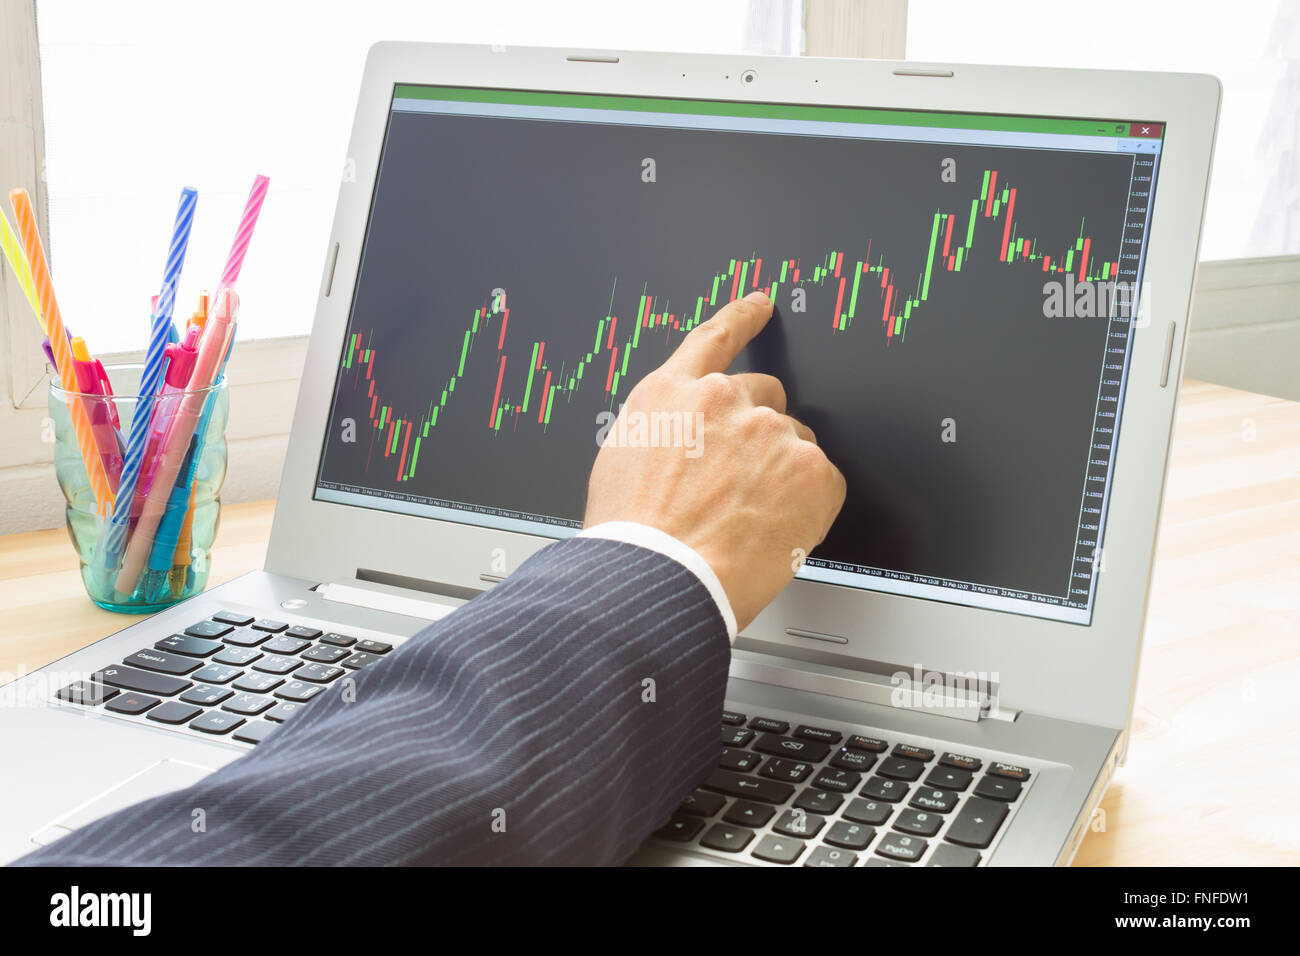 Businessman is pointing stock graph or forex graph . Technical analysis forex or stock by professional trader with - Stock Image